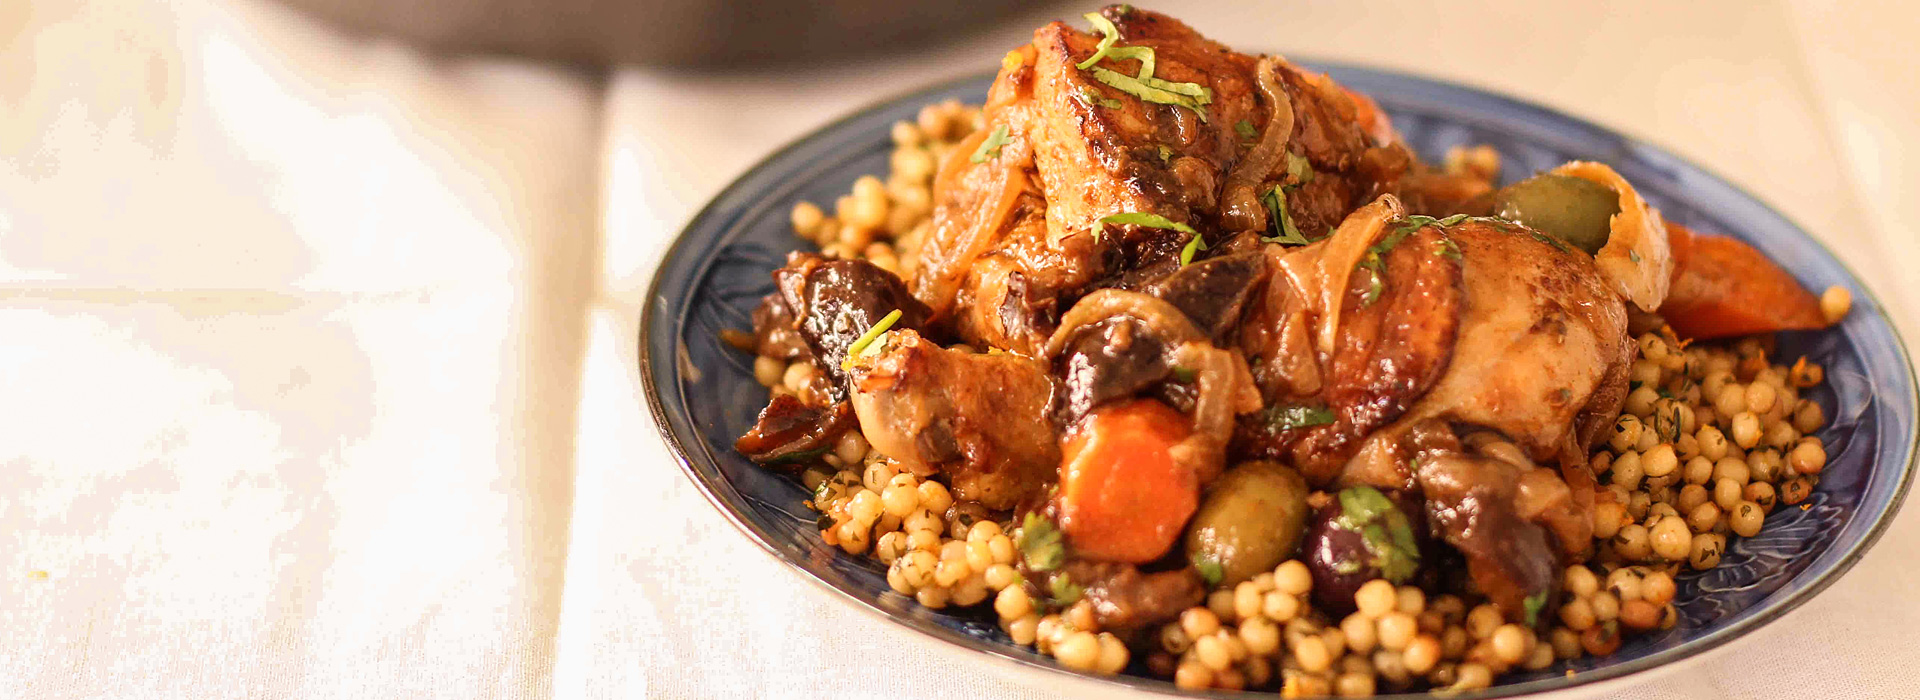 <p>Fresh Plum Concentrate used in place of honey deepens the flavor of the spices whileDiced Dried Plums enrich the braise and counter the saltiness of the olives. To complete serve the tagine in a classic style, pair it with Orange Herb Couscous.</p>